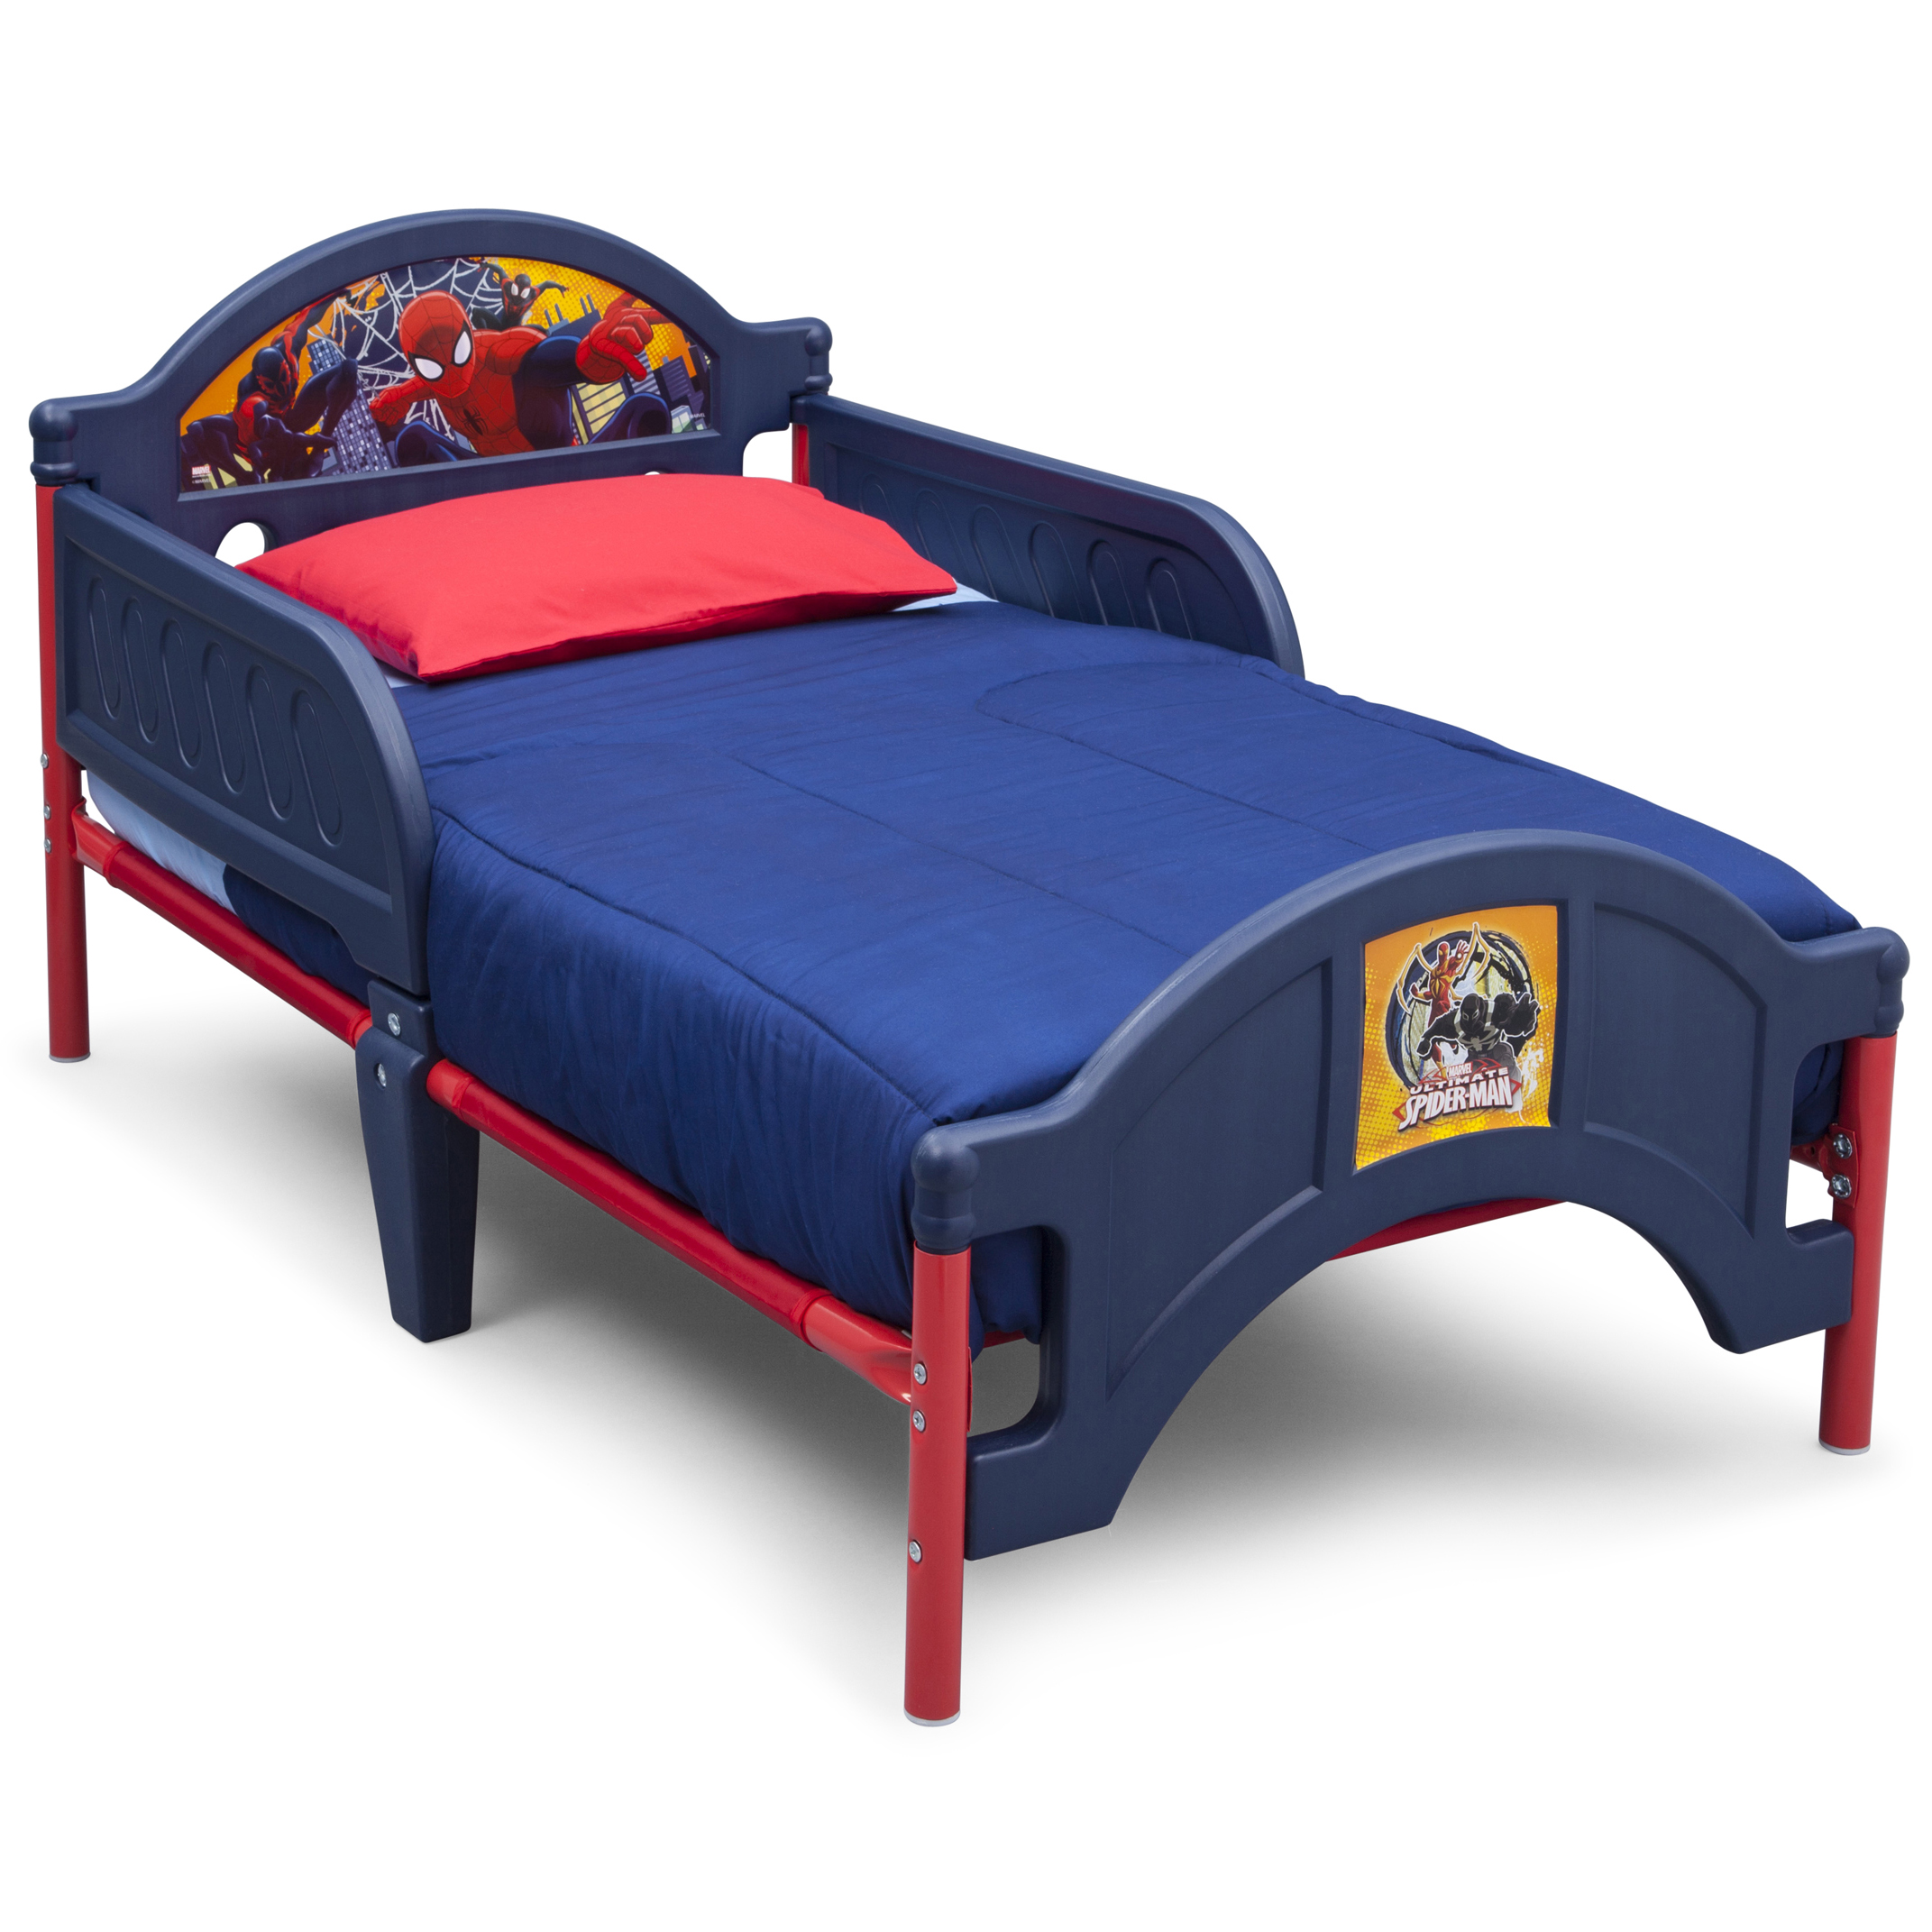 Spider-Man Plastic Toddler Bed - Walmart.com